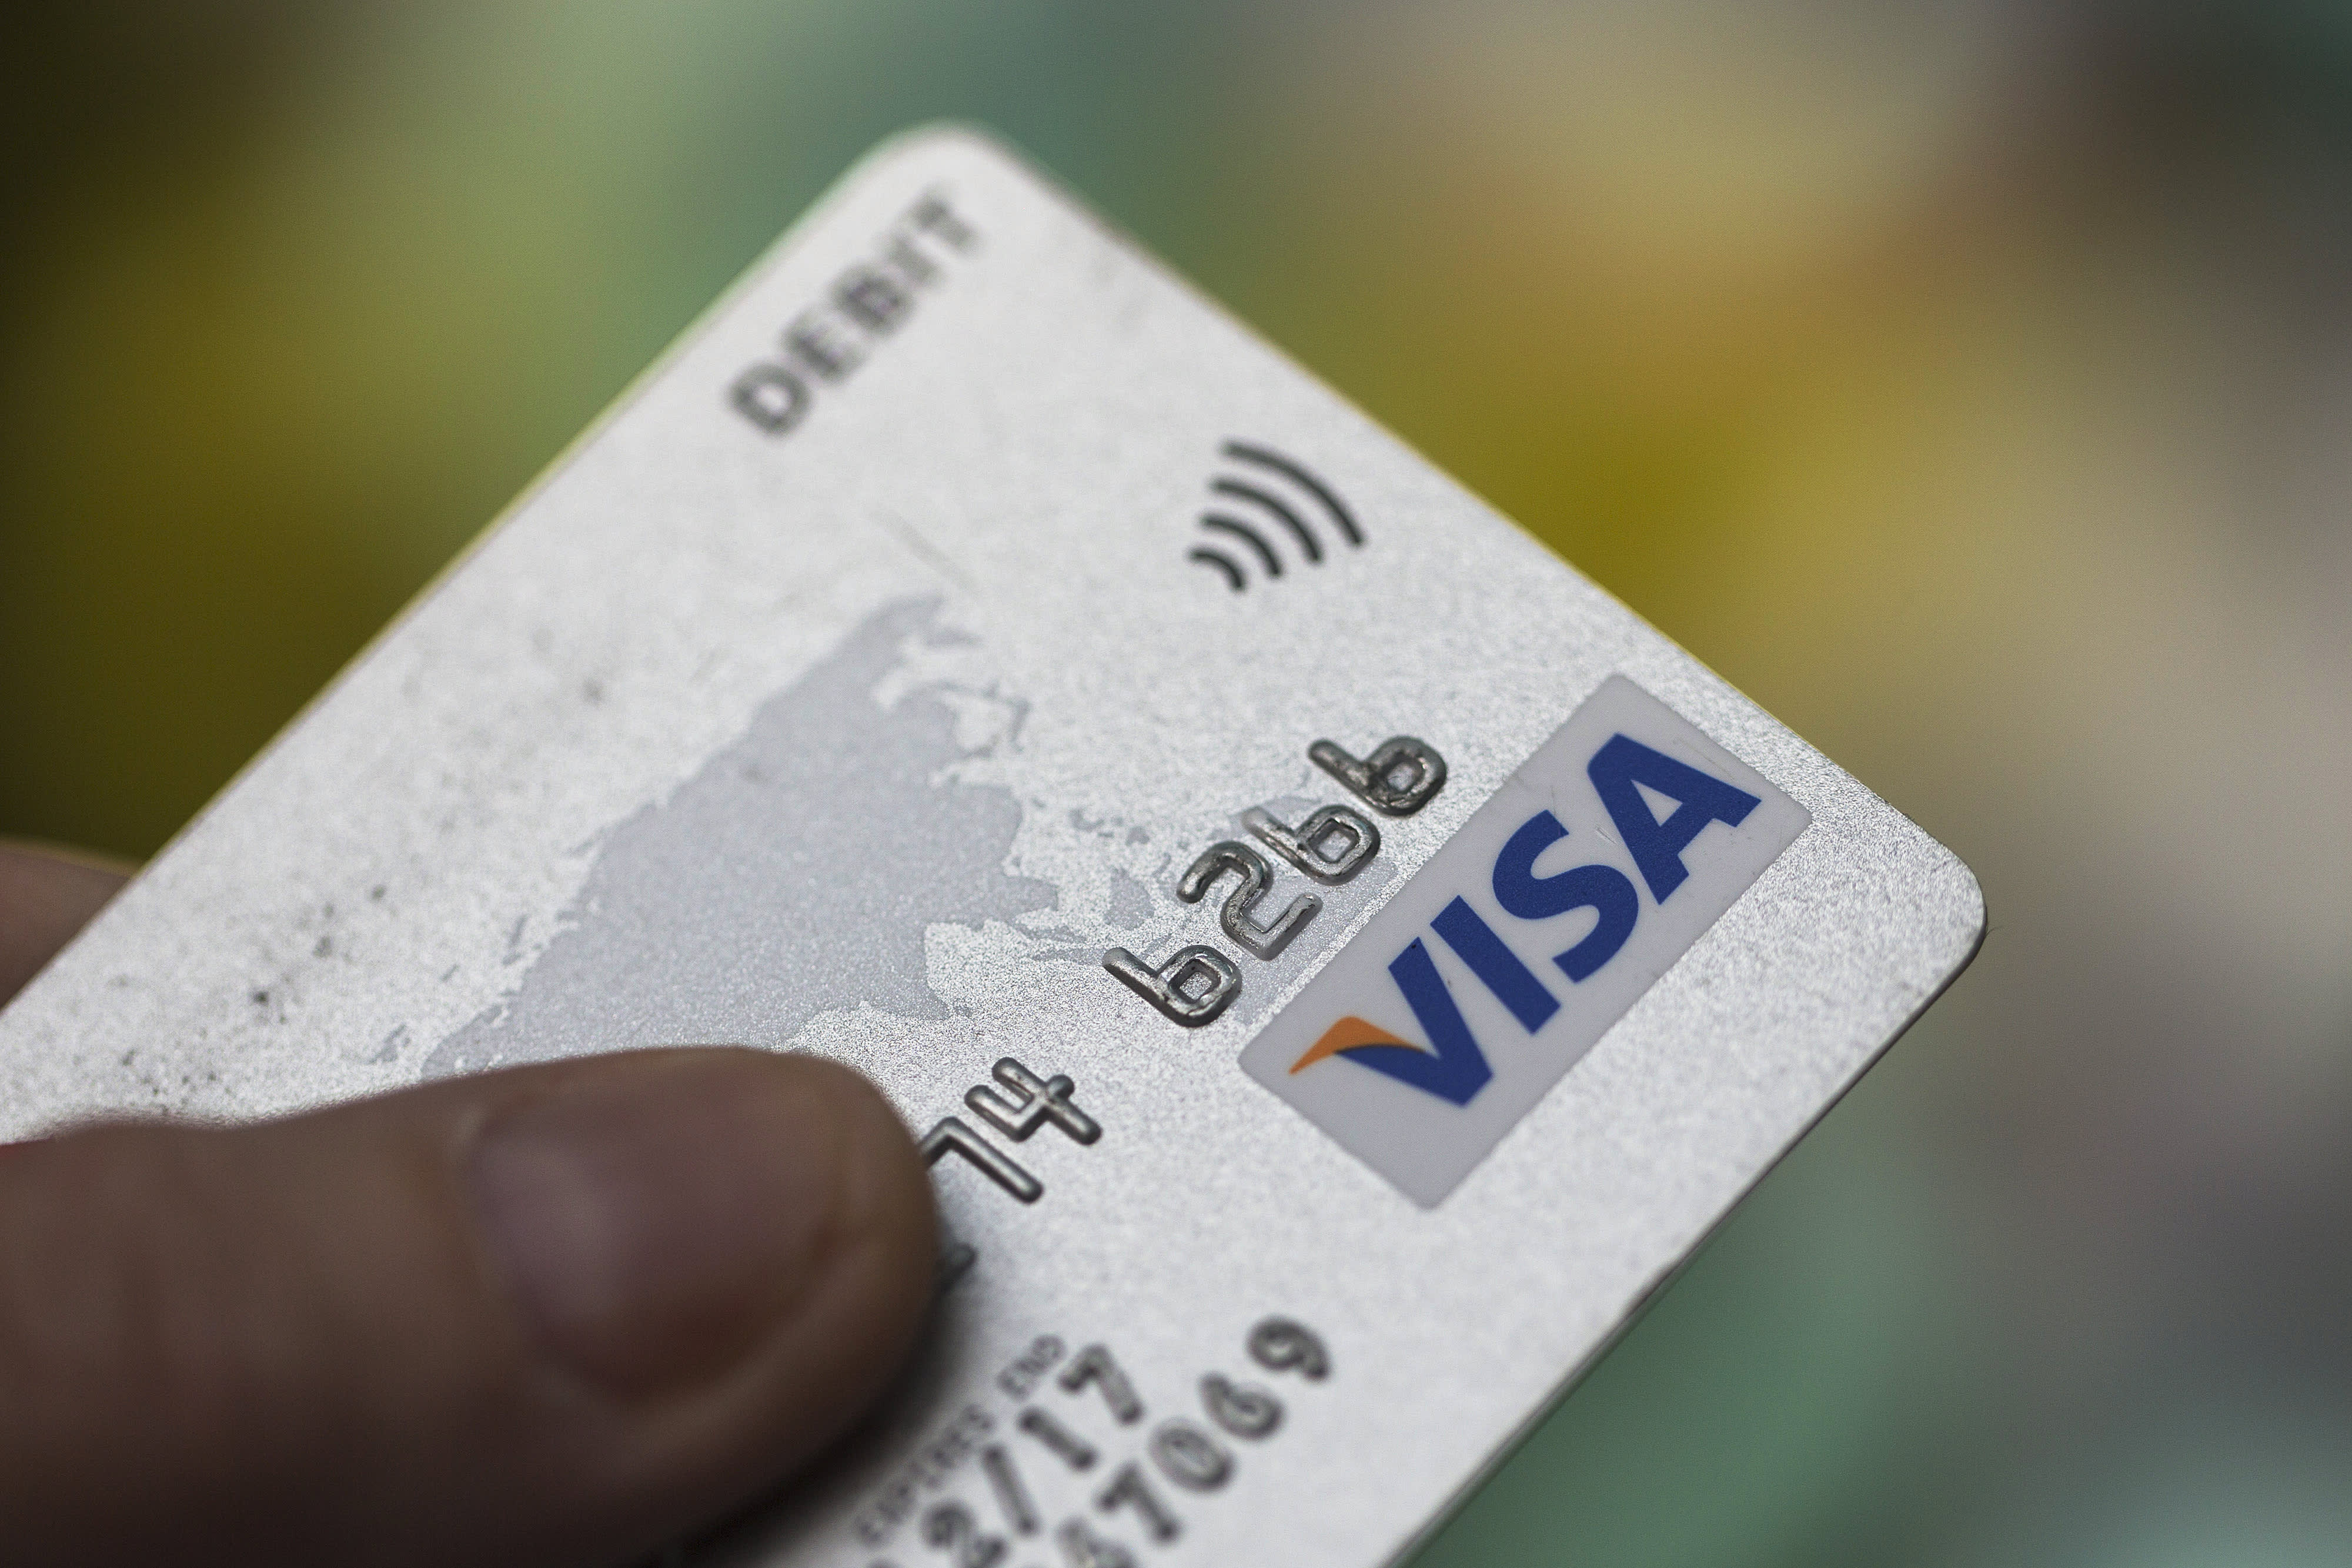 LONDON — Visa said Thursday it has agreed to buy British payments start-up Currencycloud, in its second major fintech acquisition of 2021. The deal